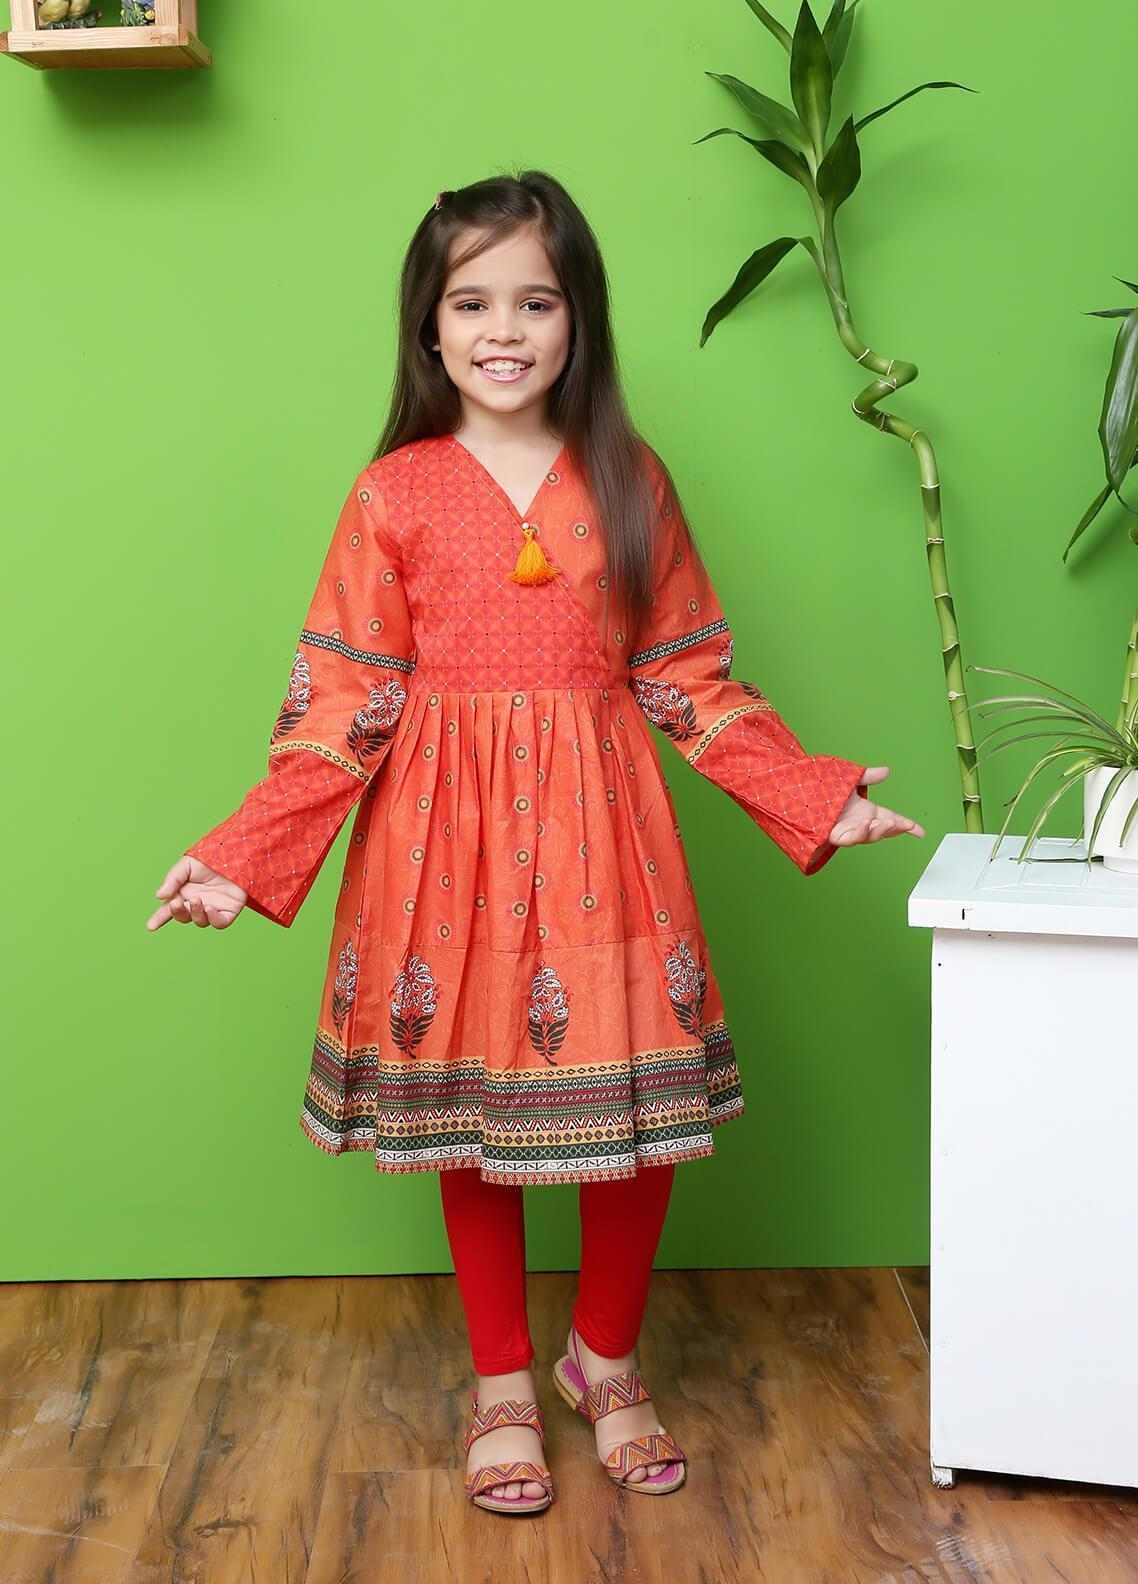 Ochre Lawn Formal Girls Kurtis - OPL 20 Mix